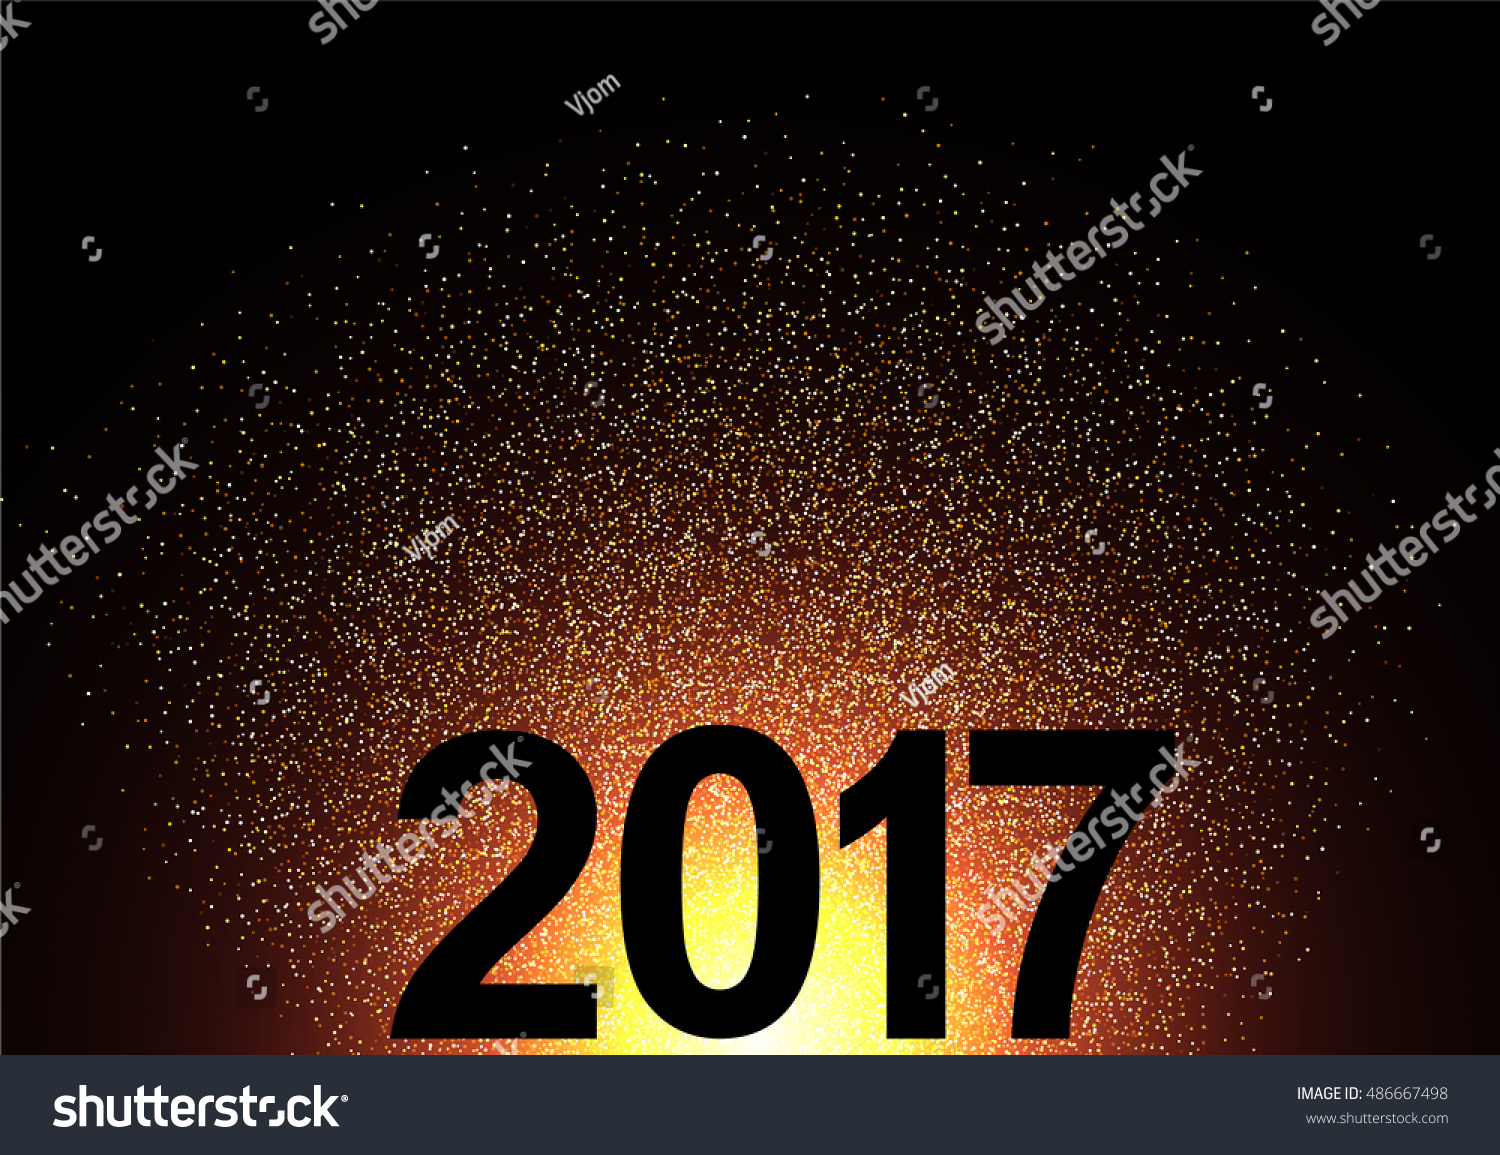 2017 New Year shining background. Vector illustration. #486667498